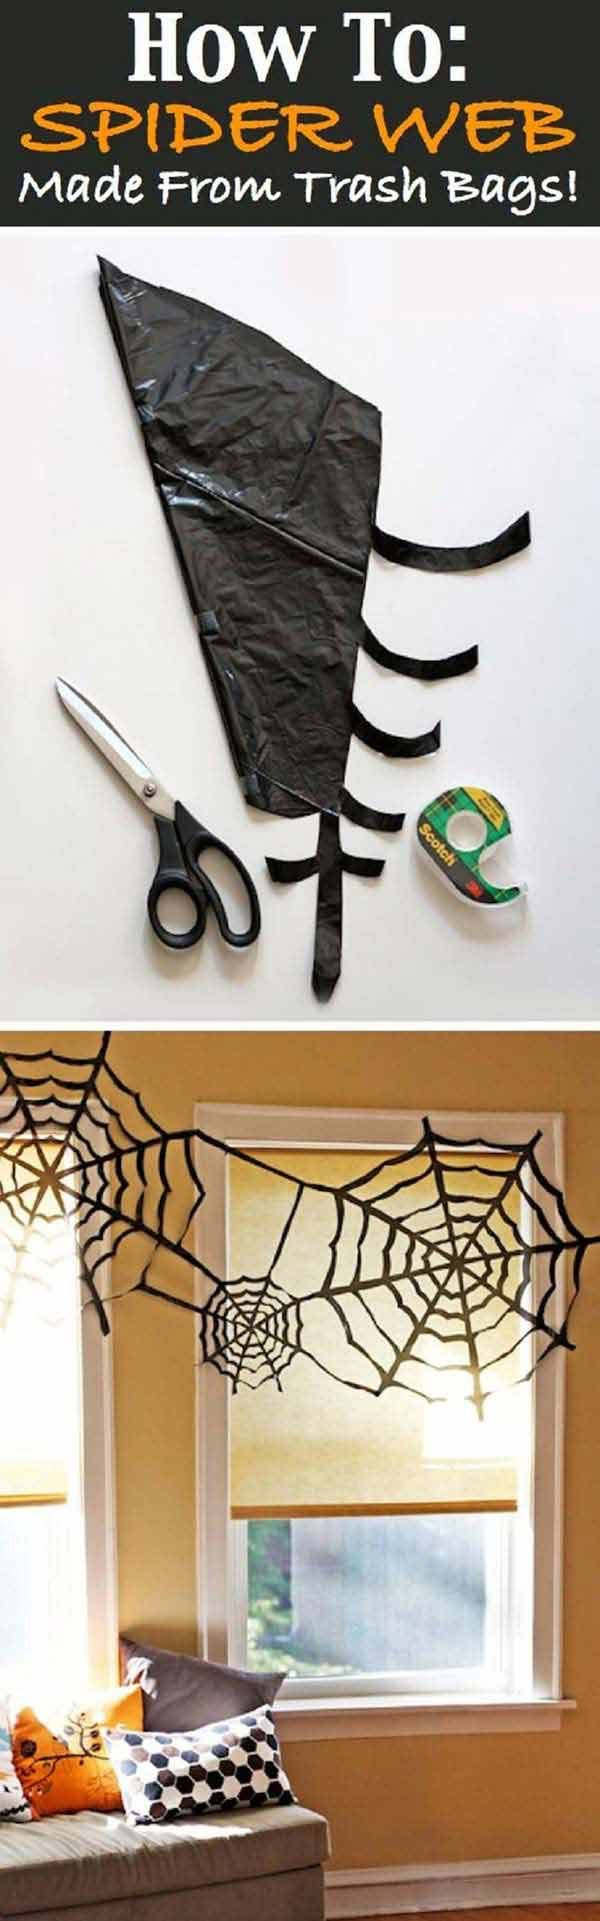 Halloween is almost upon us, but that doesn't mean you still can't have some spooky crafts and hacks for the coming scary night. We've gathered 21 easy and cheap Last-Minute decor crafts and hacks that will transform your home into the creepiest place in less than a day. Take a deep breath and read on […]